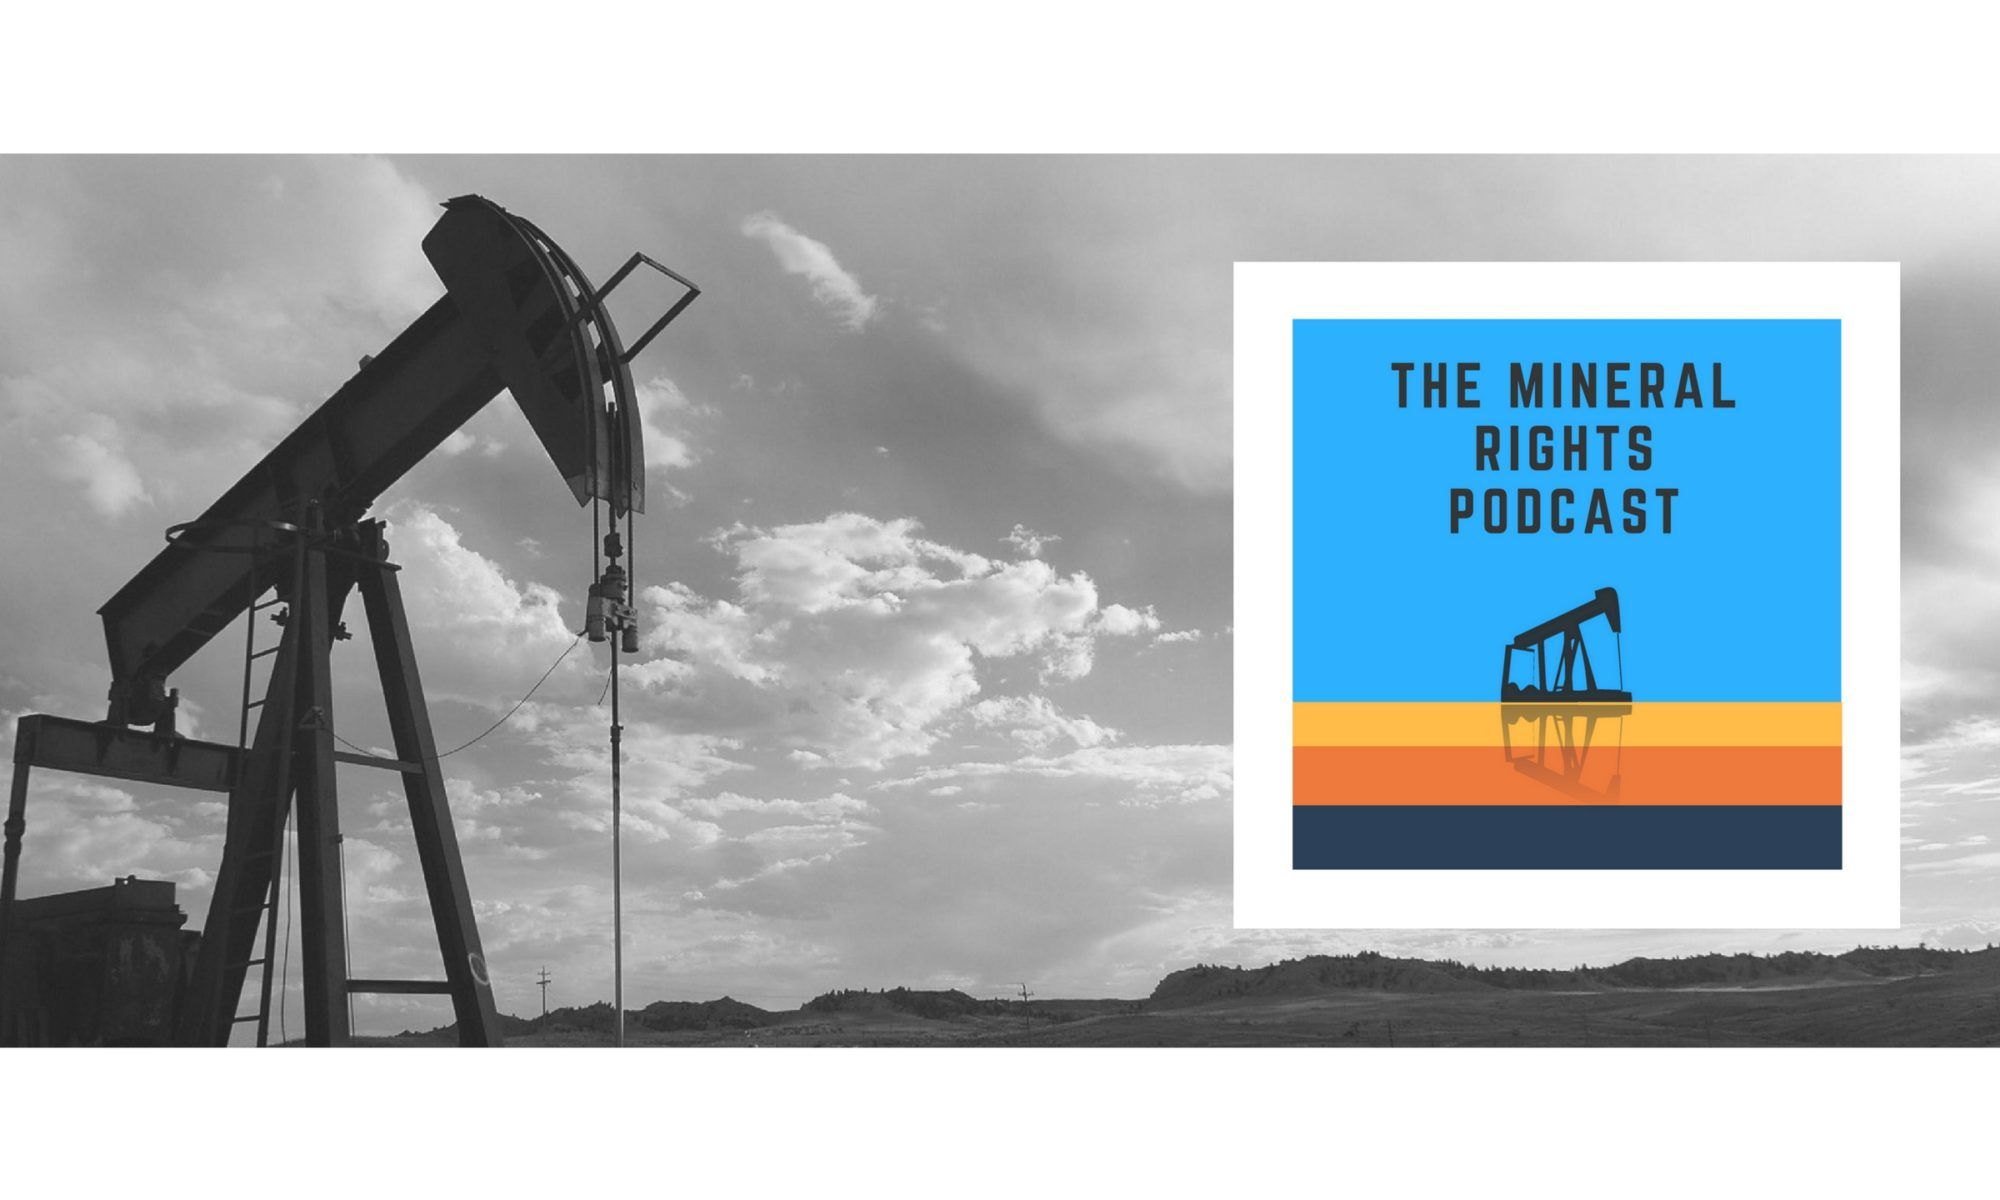 The Mineral Rights Podcast